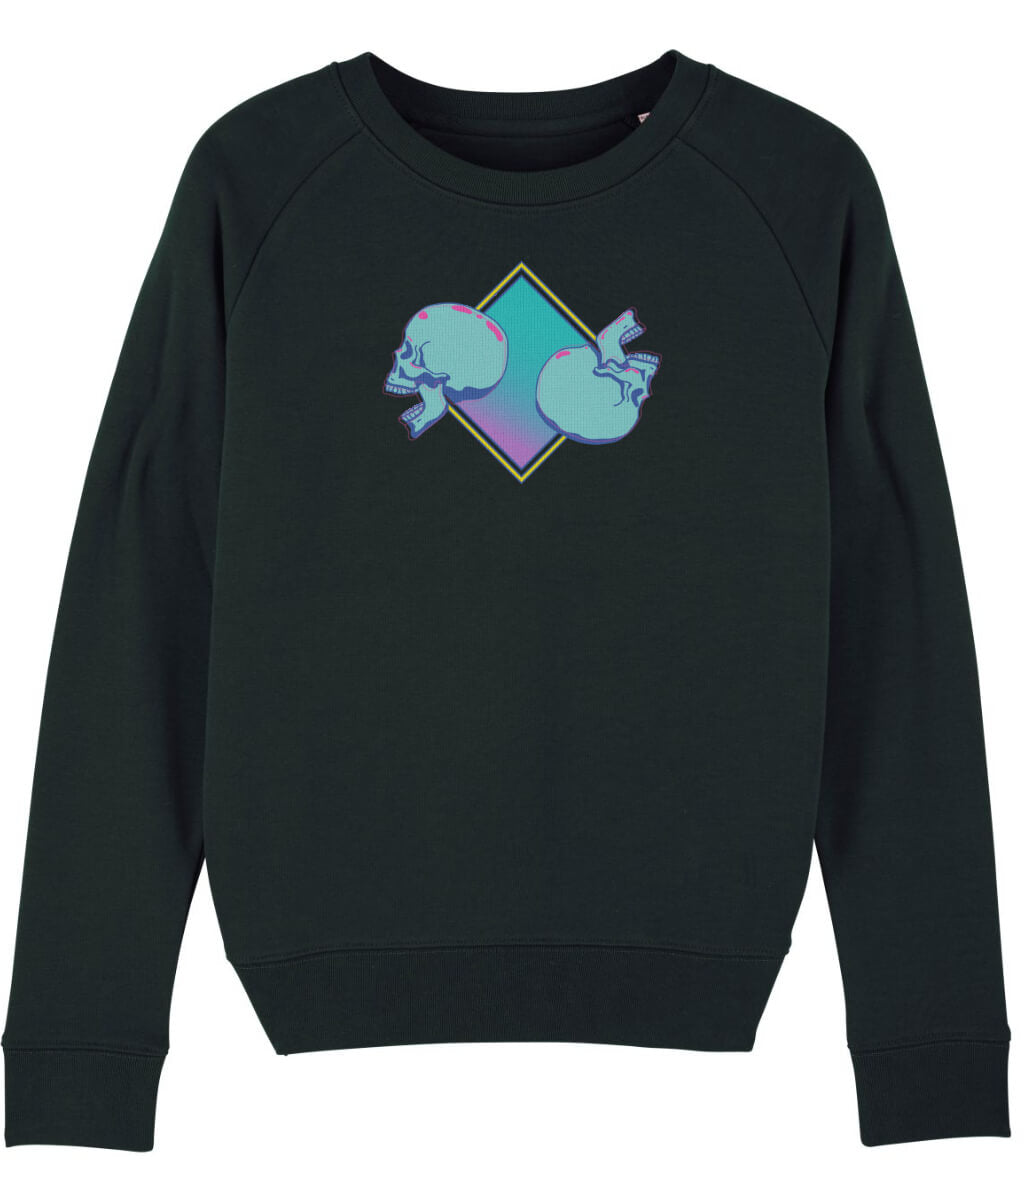 black sweatshirt with skulls print in blue and purple